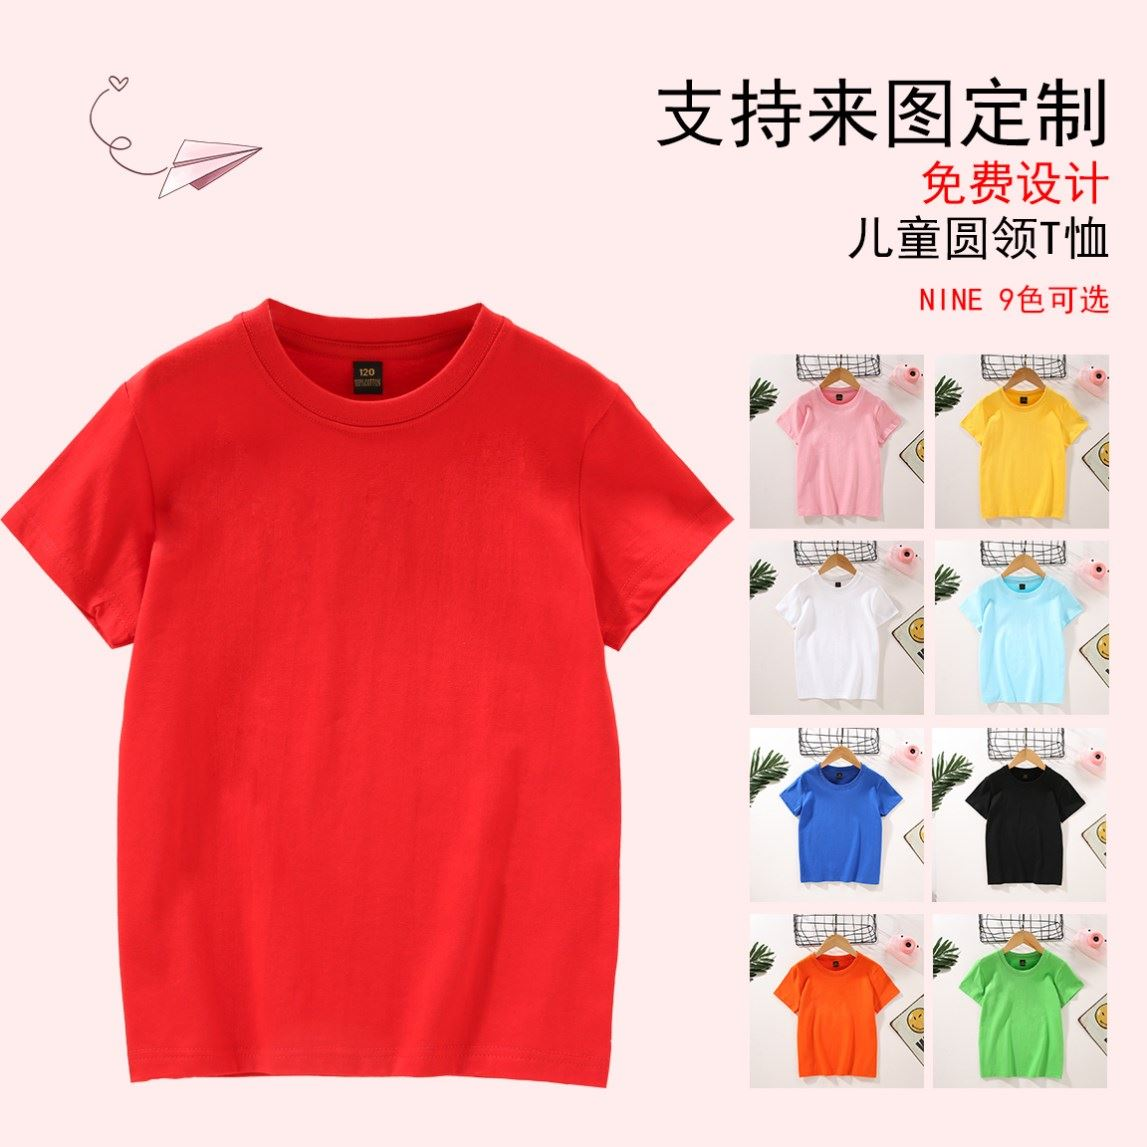 T-shirt mens and womens cotton blank solid color heat transfer fashion childrens British style T-shirt custom class clothes half sleeve pattern